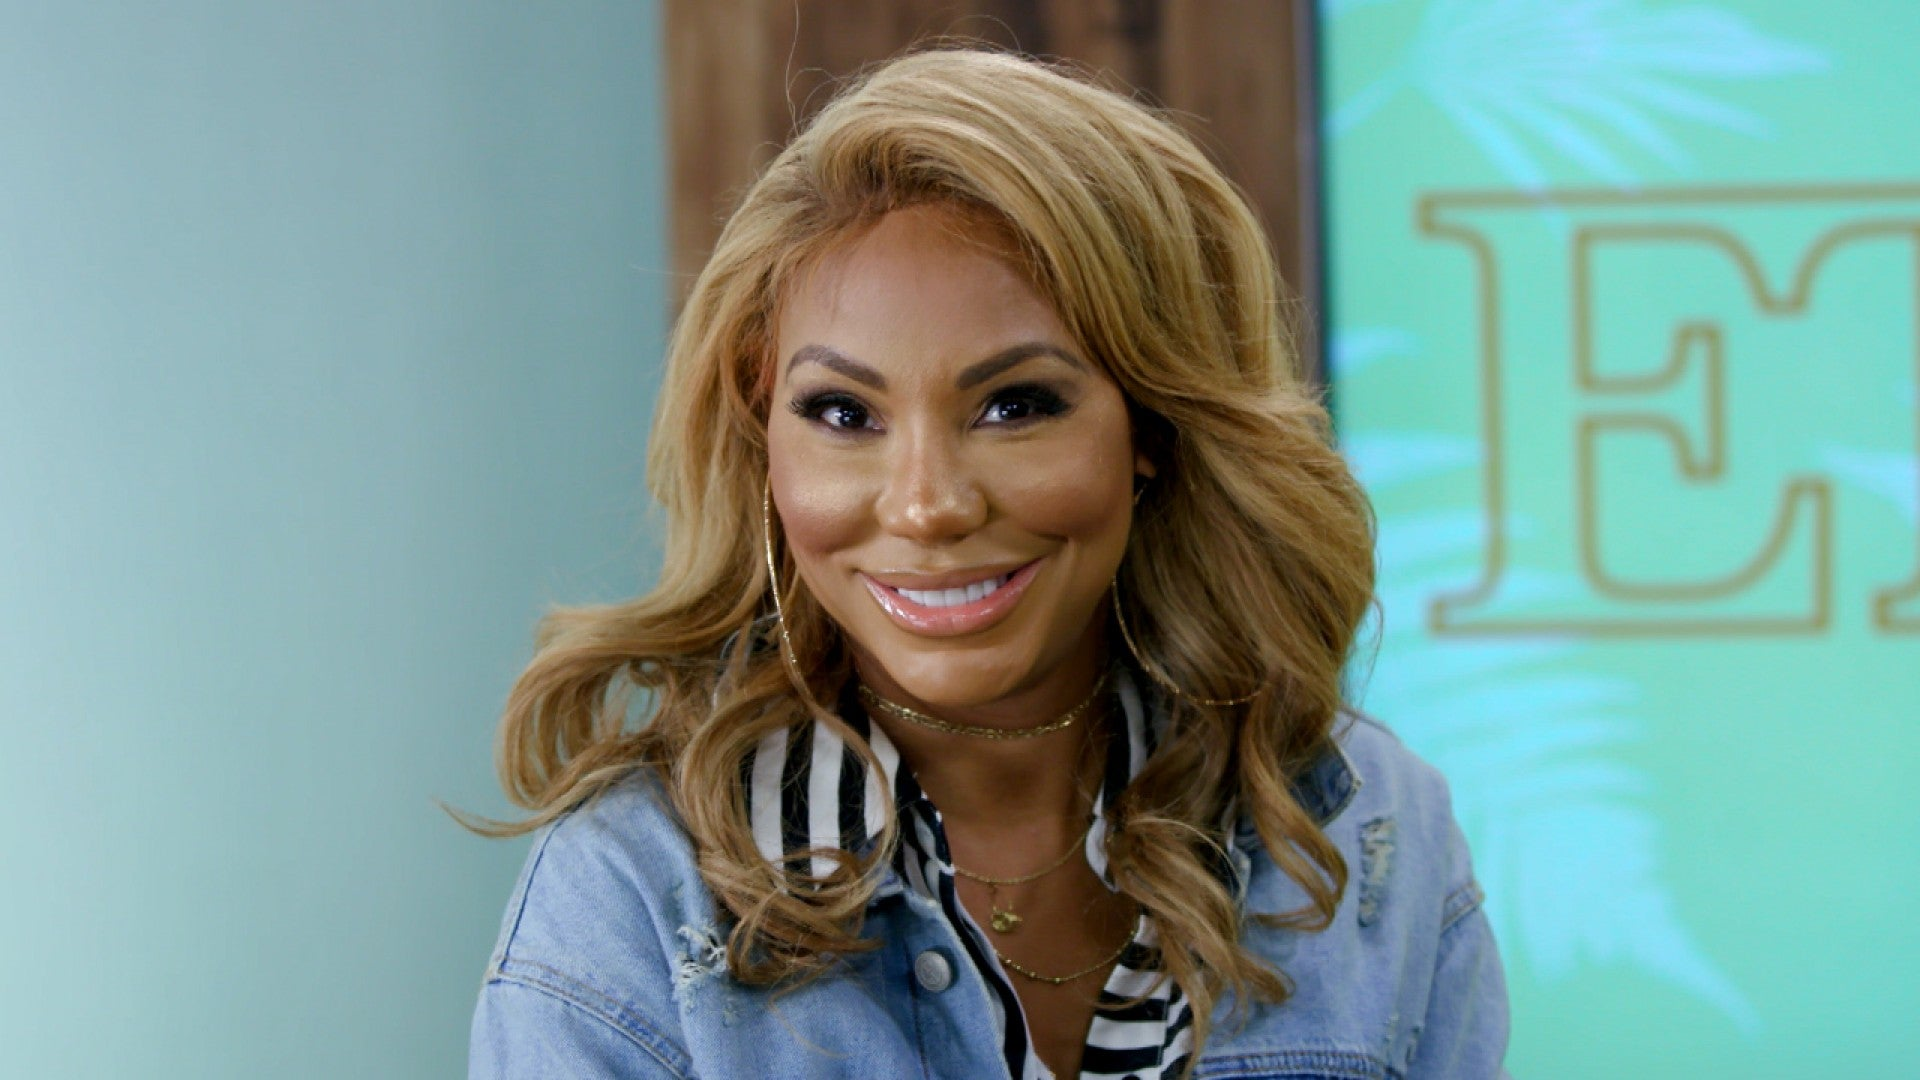 tamar-braxton-prepared-for-fans-another-monday-madness-for-this-evening